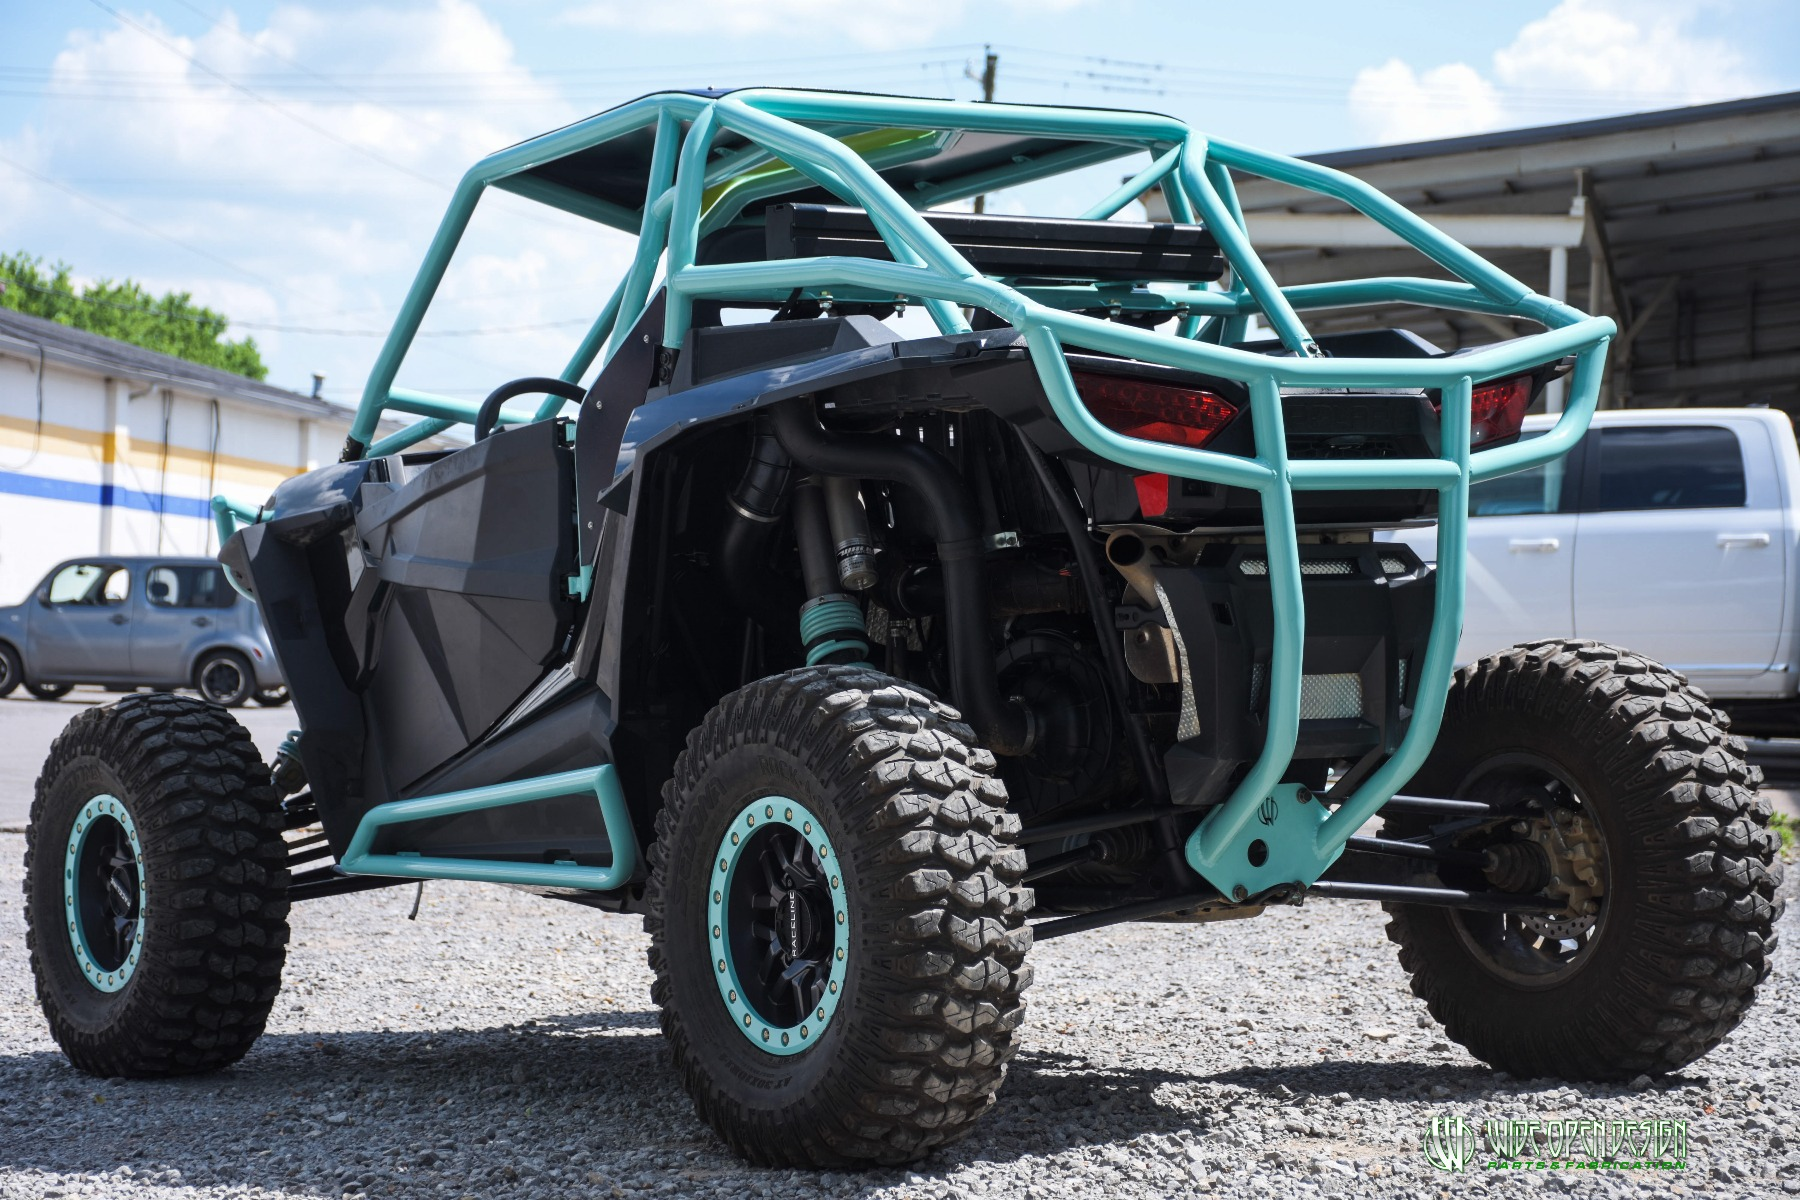 Wide Open Design UTV Cage RZR Cage Double Down featuring Double Pillars 34